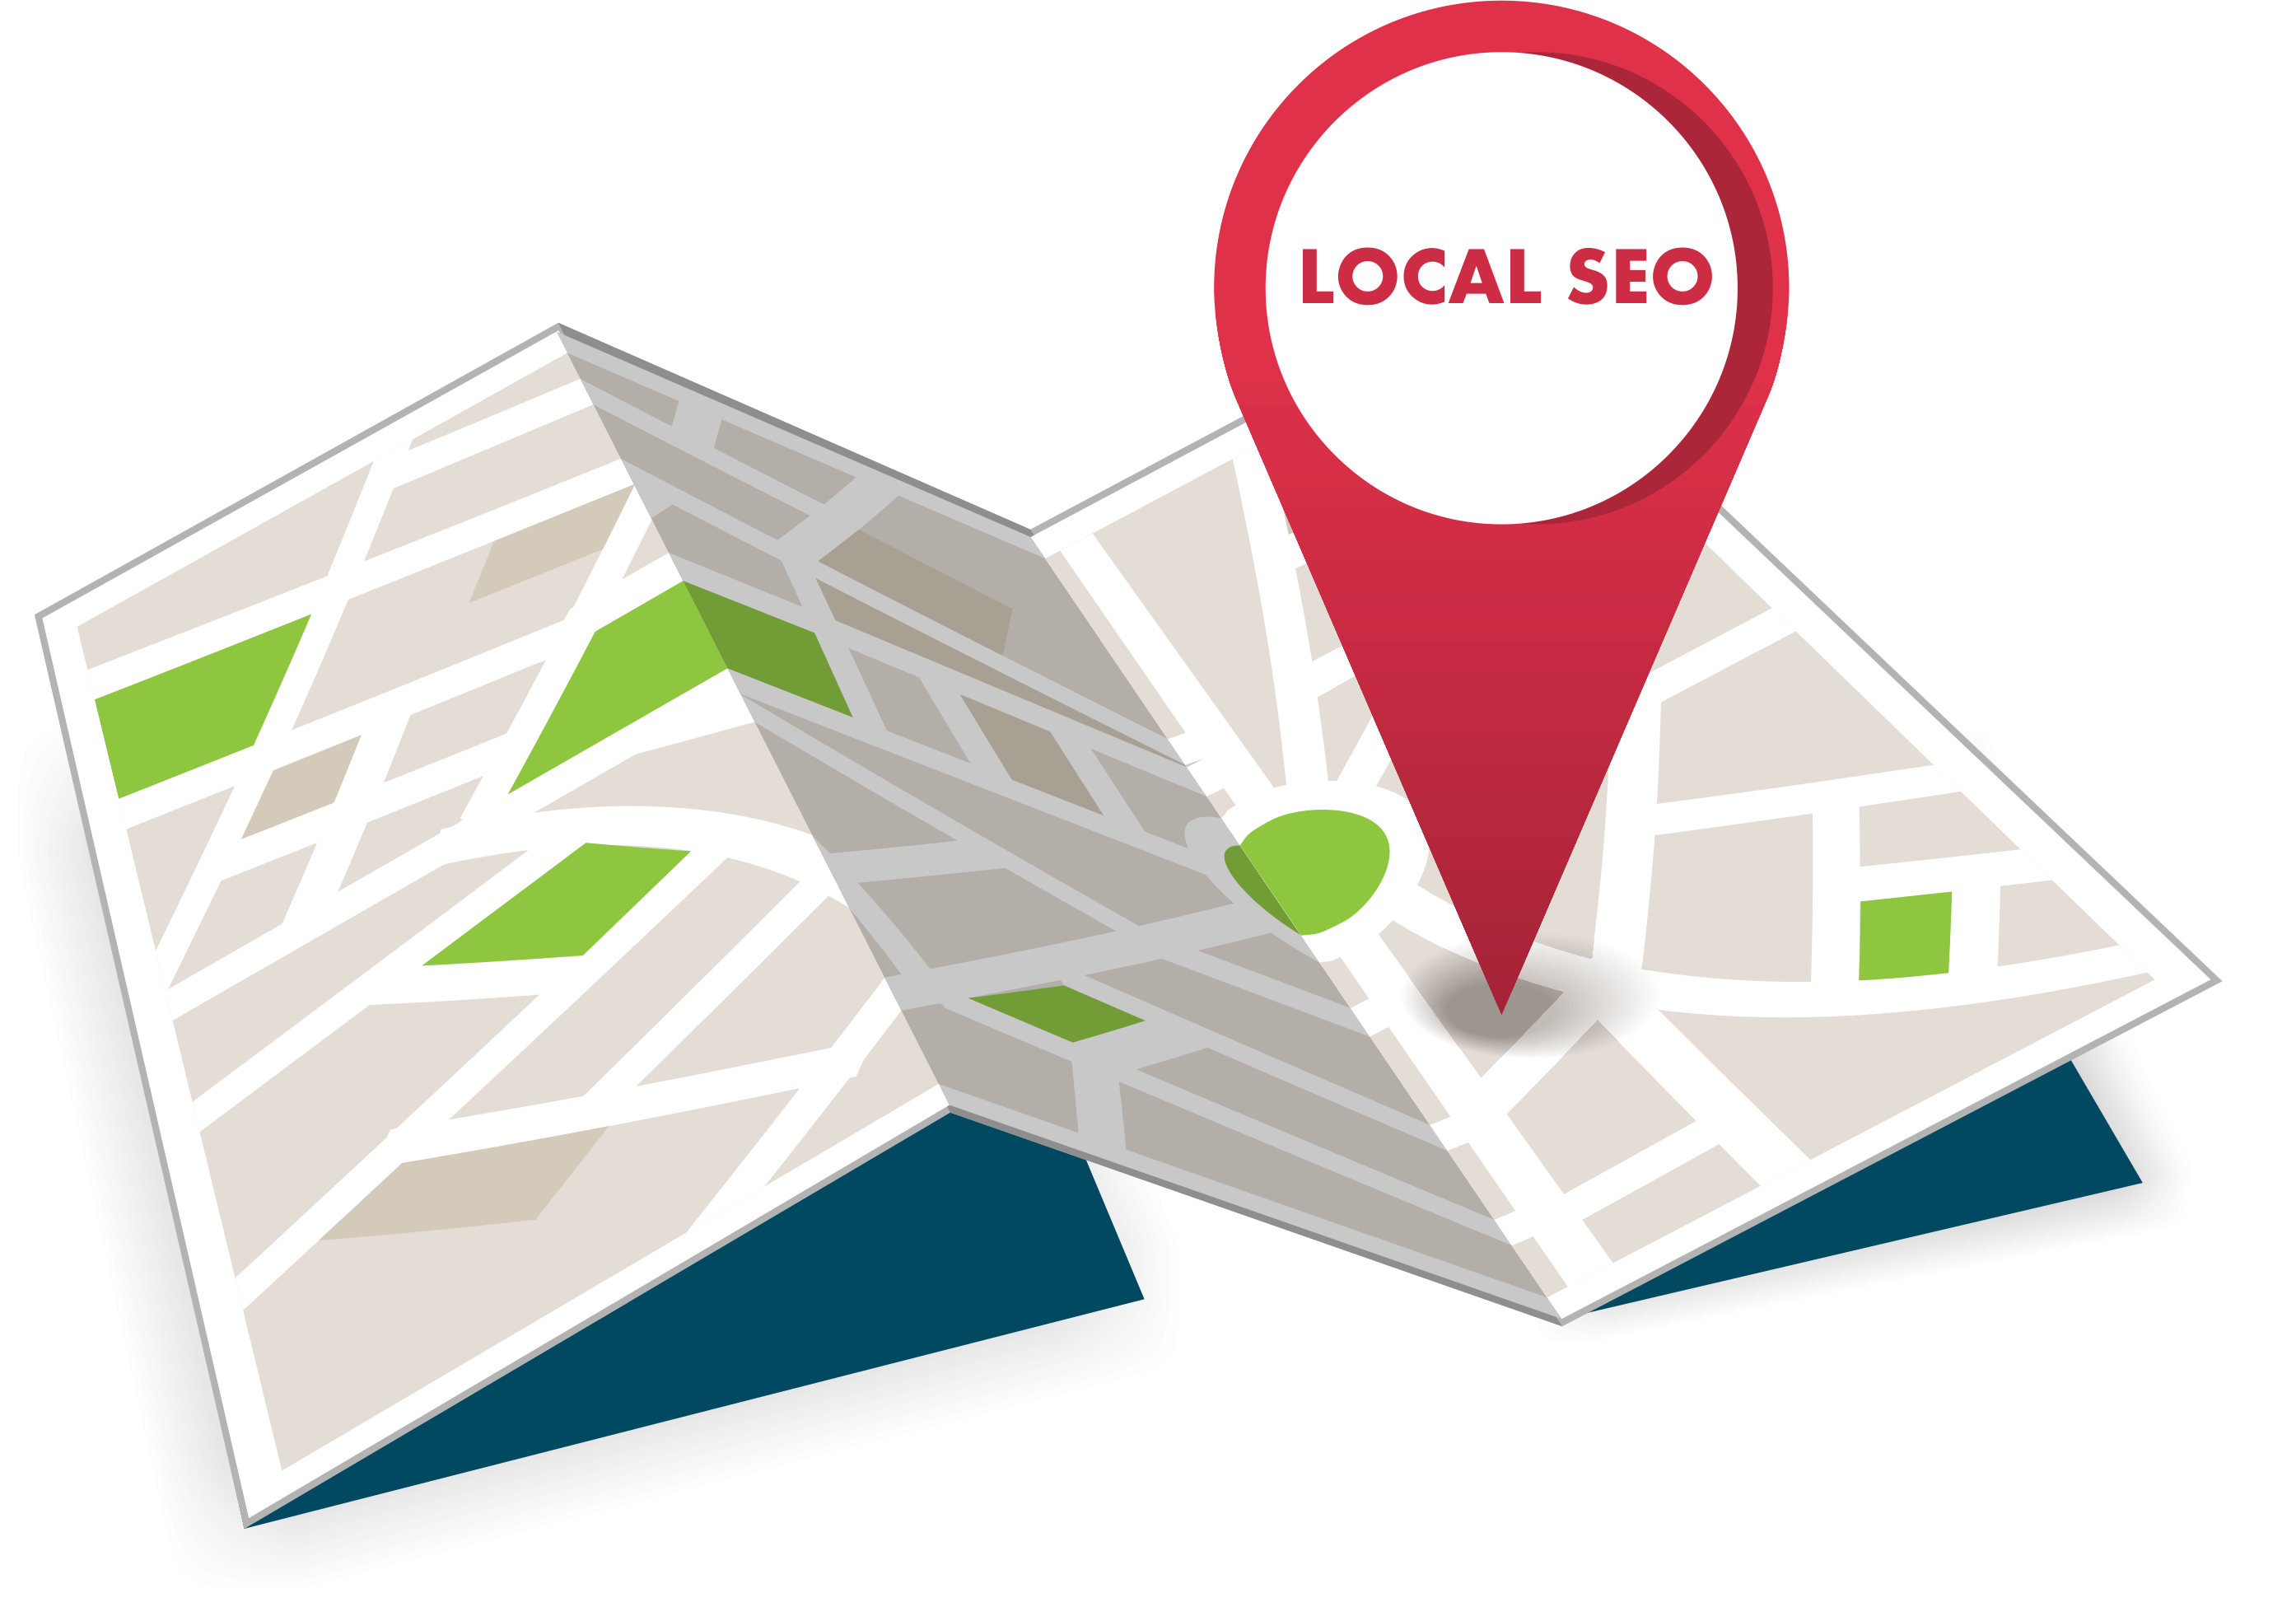 Local SEO Checklist: Optimizing Your Google My Business Account